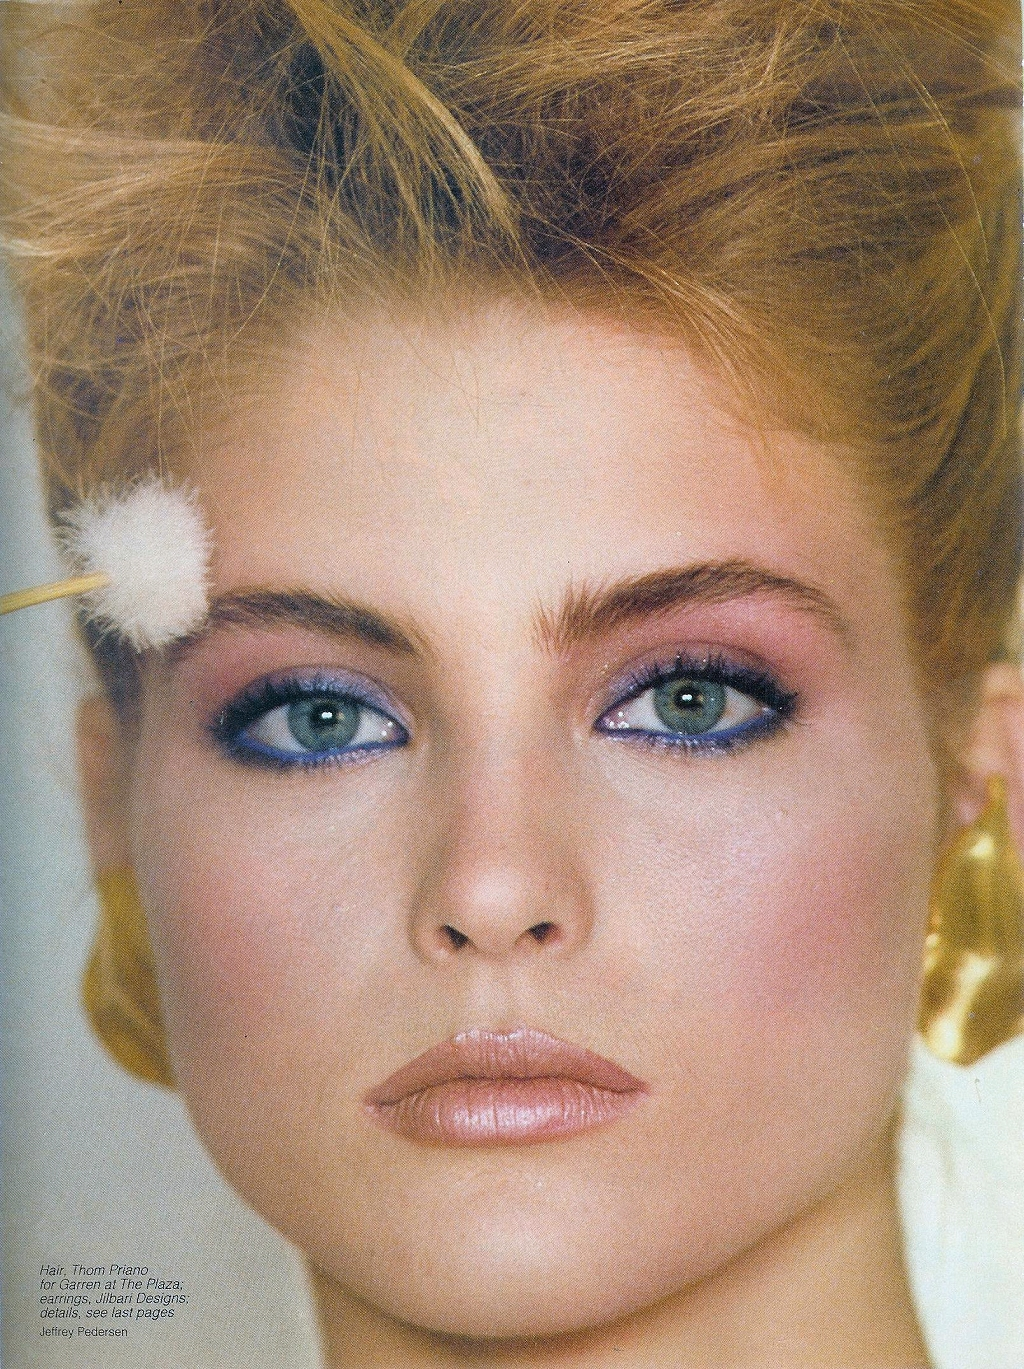 1980s makeup and hair